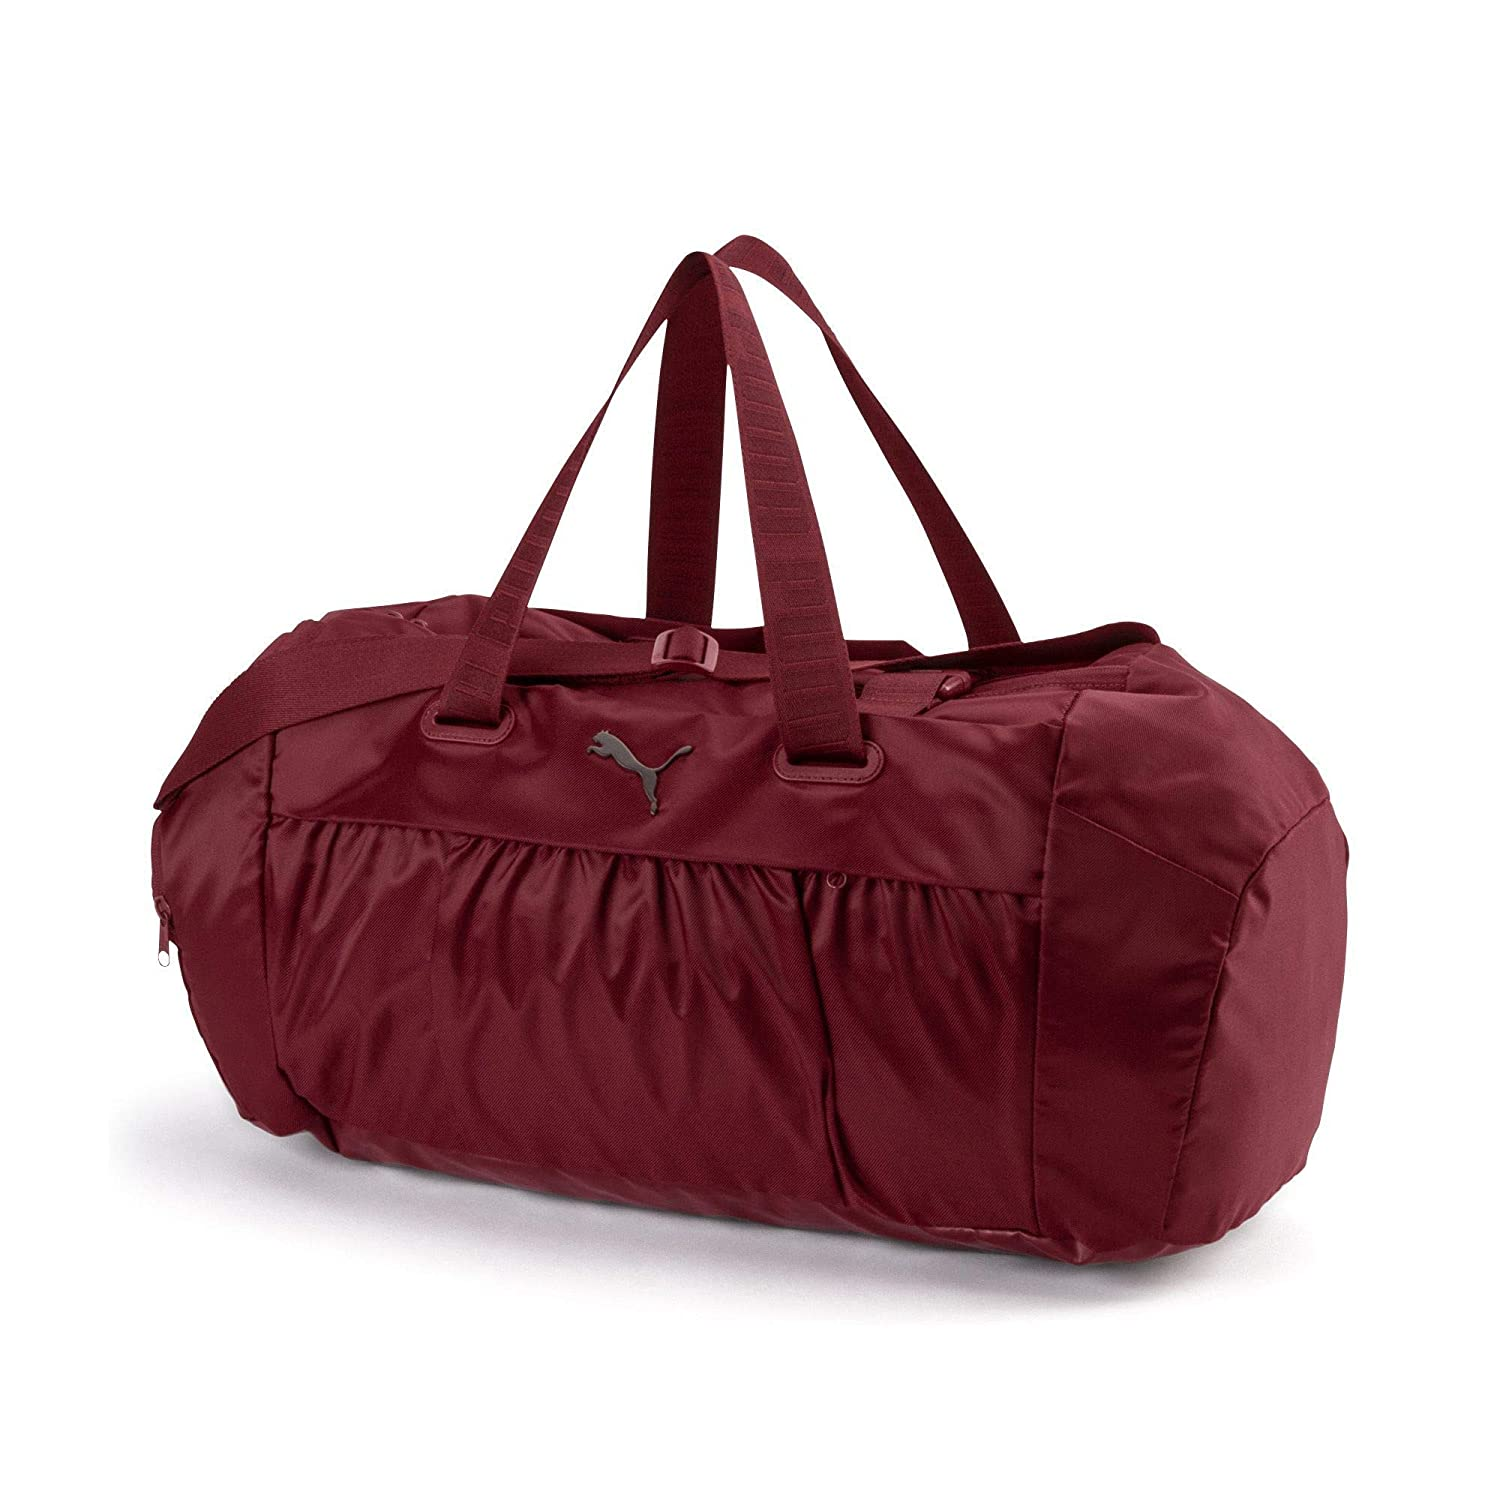 Puma at Sports Duffle Bag, Femme 75048 OSFA